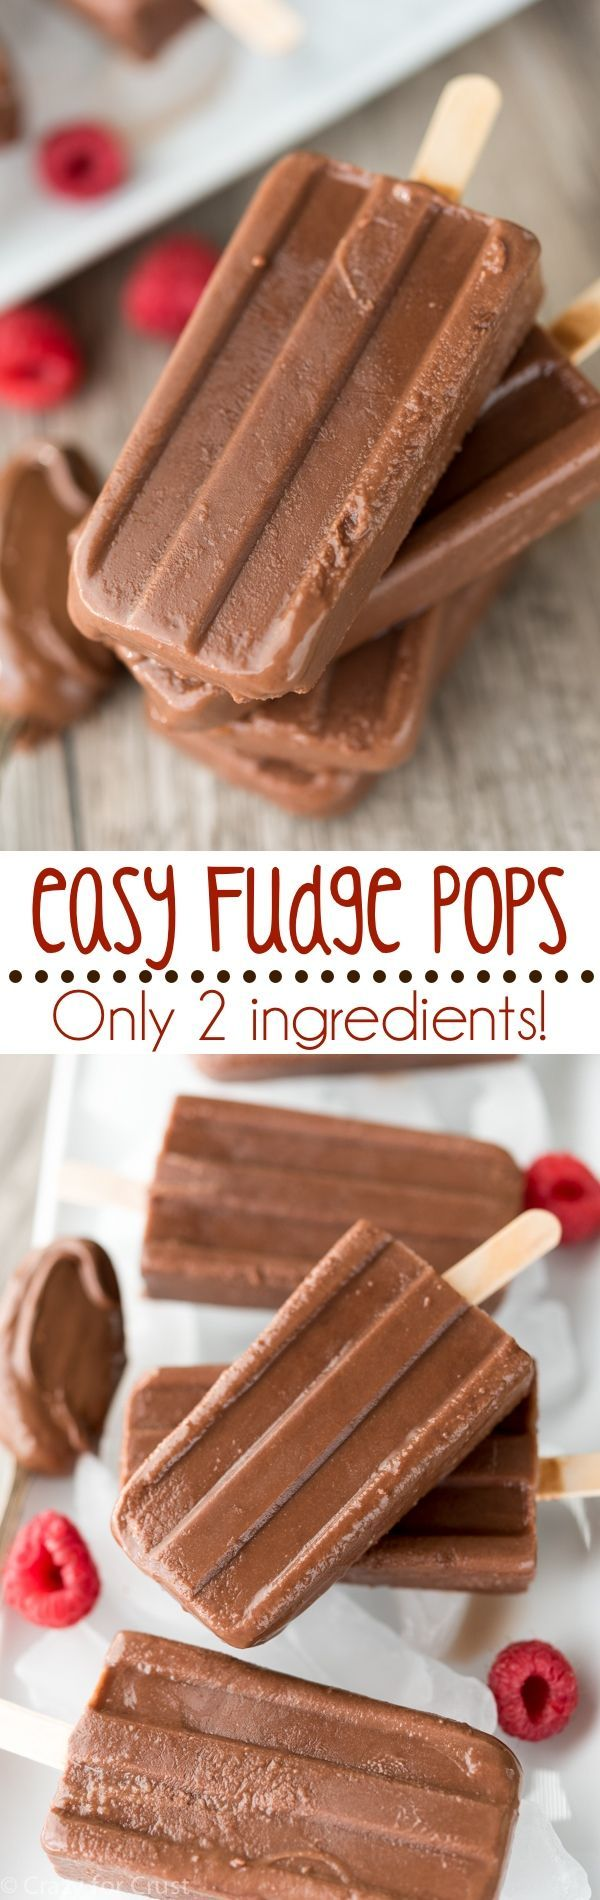 Easy Fudge Pops with only 2 ingredients - like a fudgesicle only BETTER! 1/2 cup Nutella 1 1/2 cups of Chocolate Almond Breeze